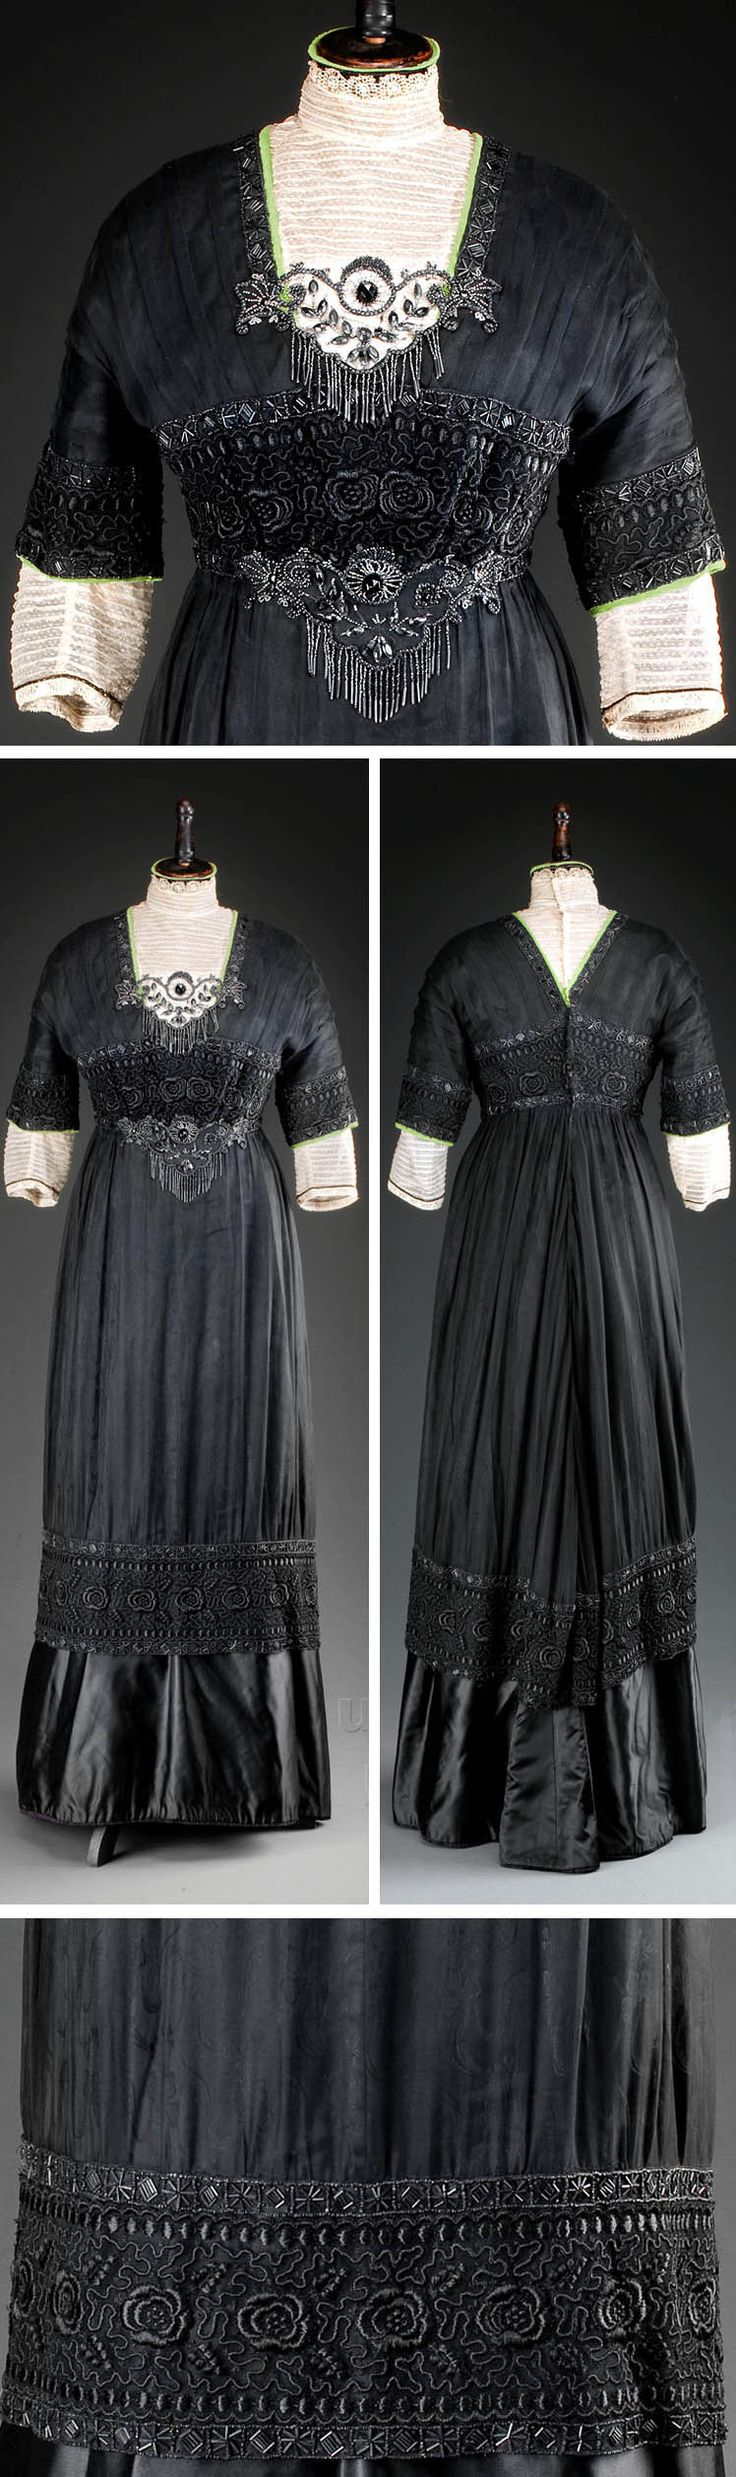 Dress, Prague, ca. 1912. Silk. Photo: Kocourek Ondřej, Gabriel Urbanek. Museum of Decorative Arts, Prague, via eSbirky.cz